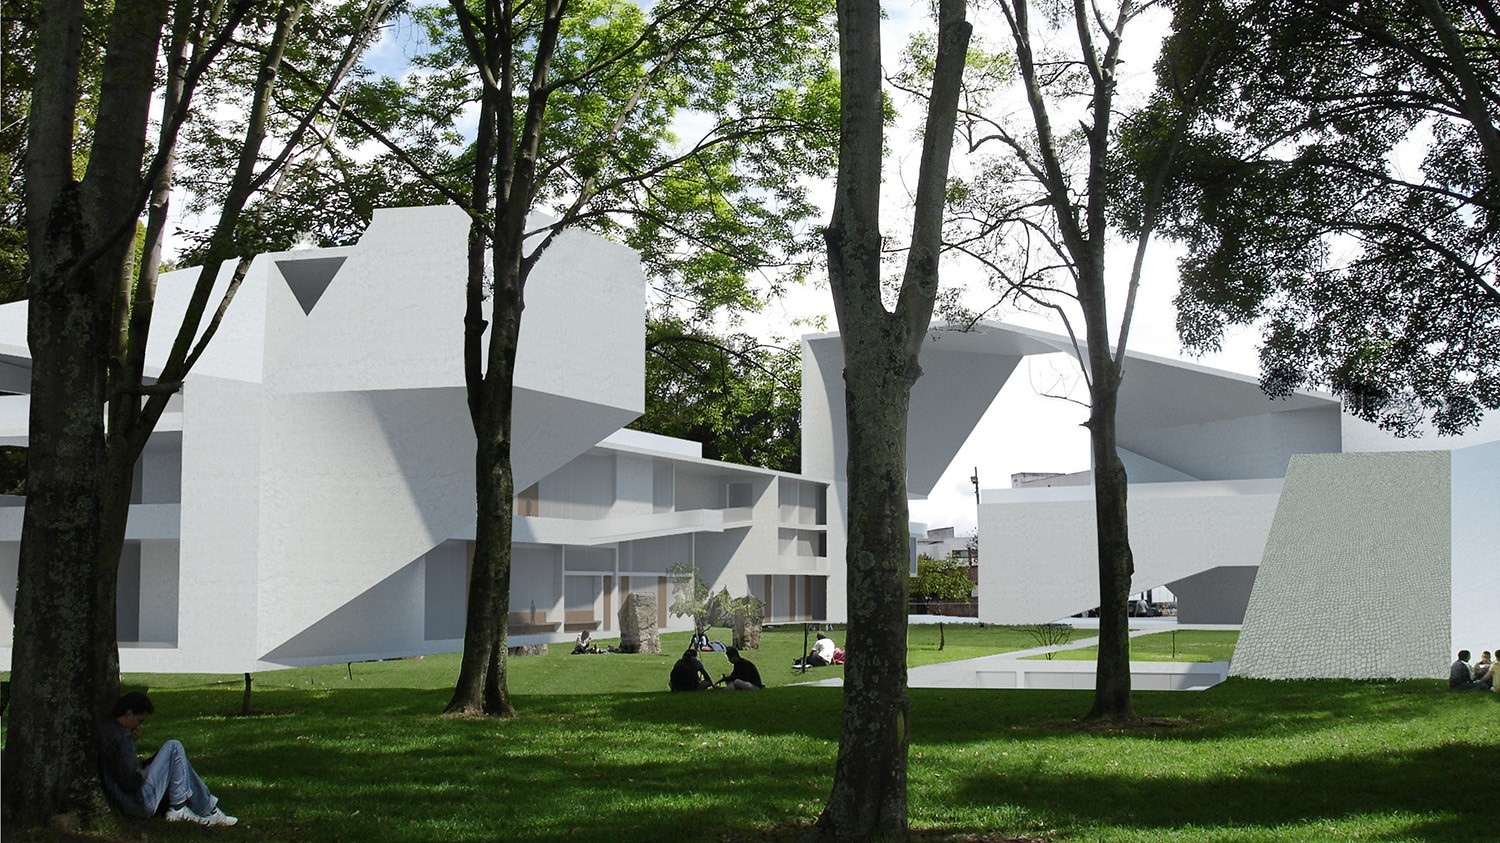 https://s3.us-east-2.amazonaws.com/steven-holl/uploads/projects/project-images/StevenHollArchitects_Bogota_EASTVIEW_WH.jpg